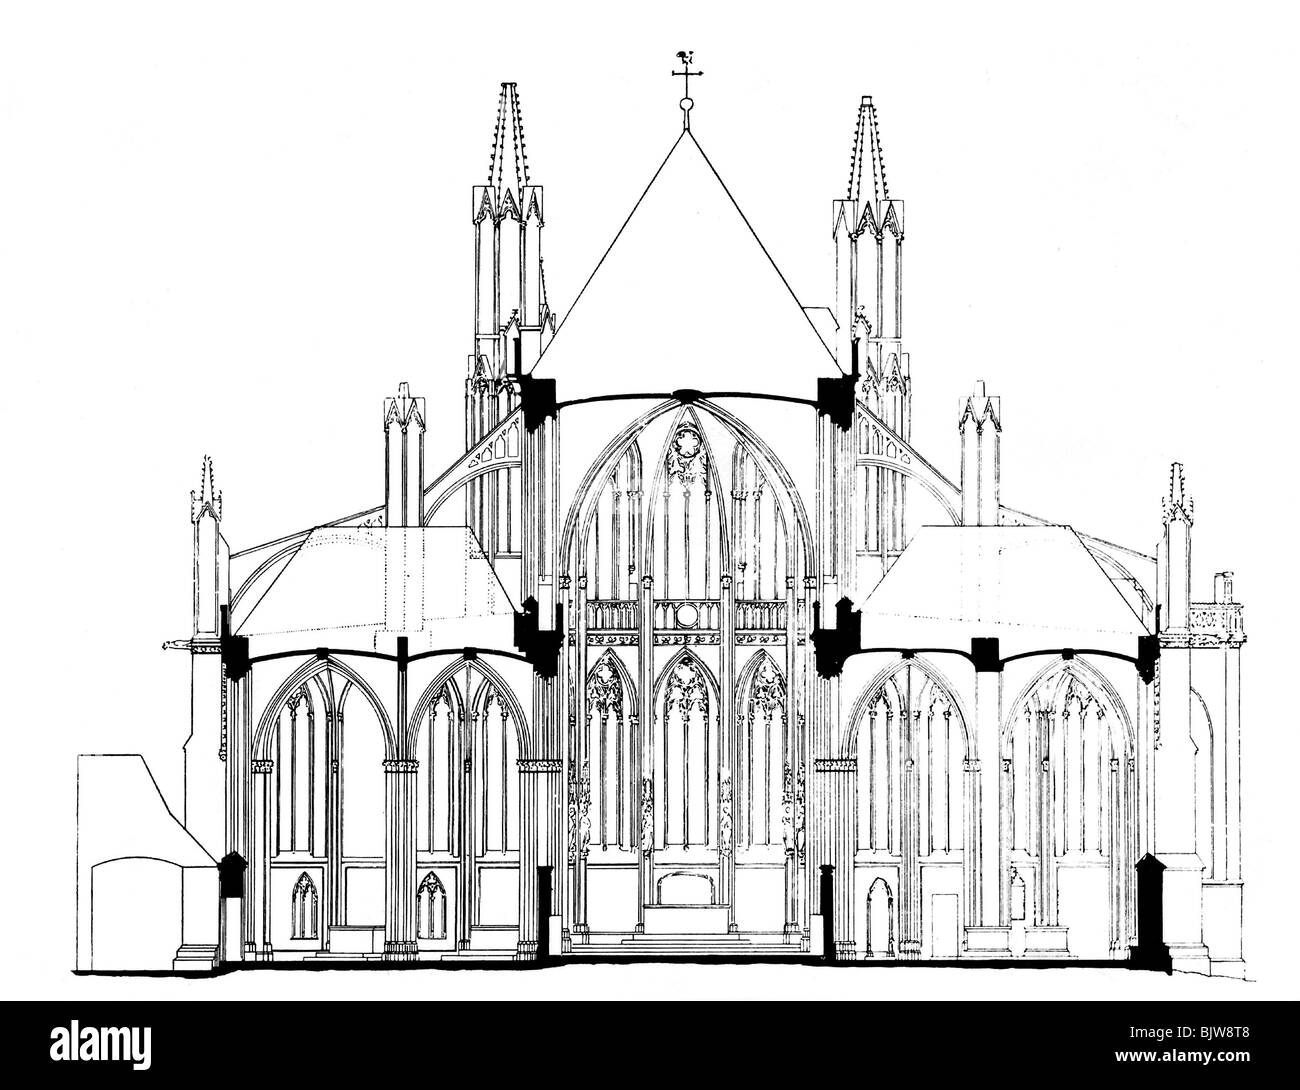 Architecture Ground Plan Cross Section Of A Gothic Cathedral Drawing Historic